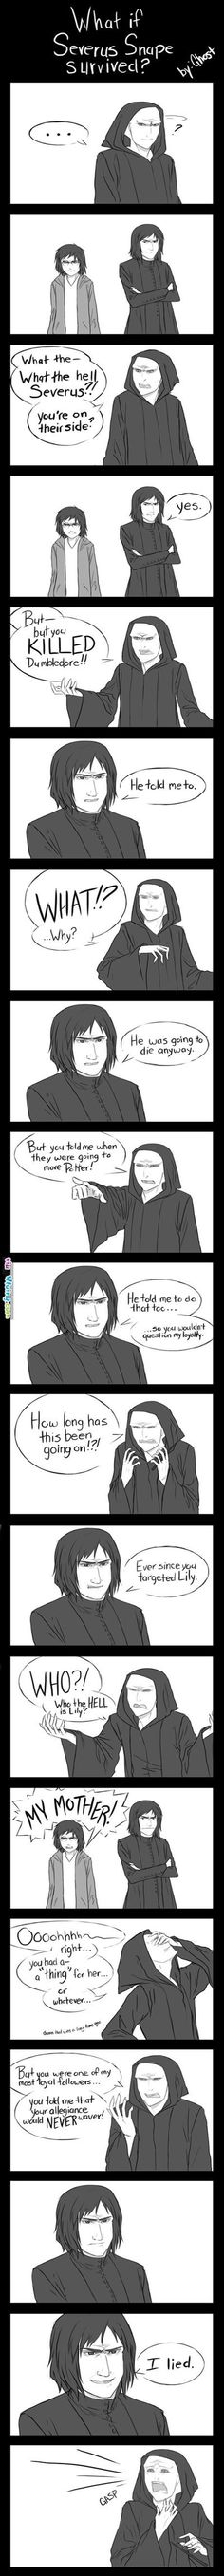 What If Snape Had Survived...? I wished this happened!